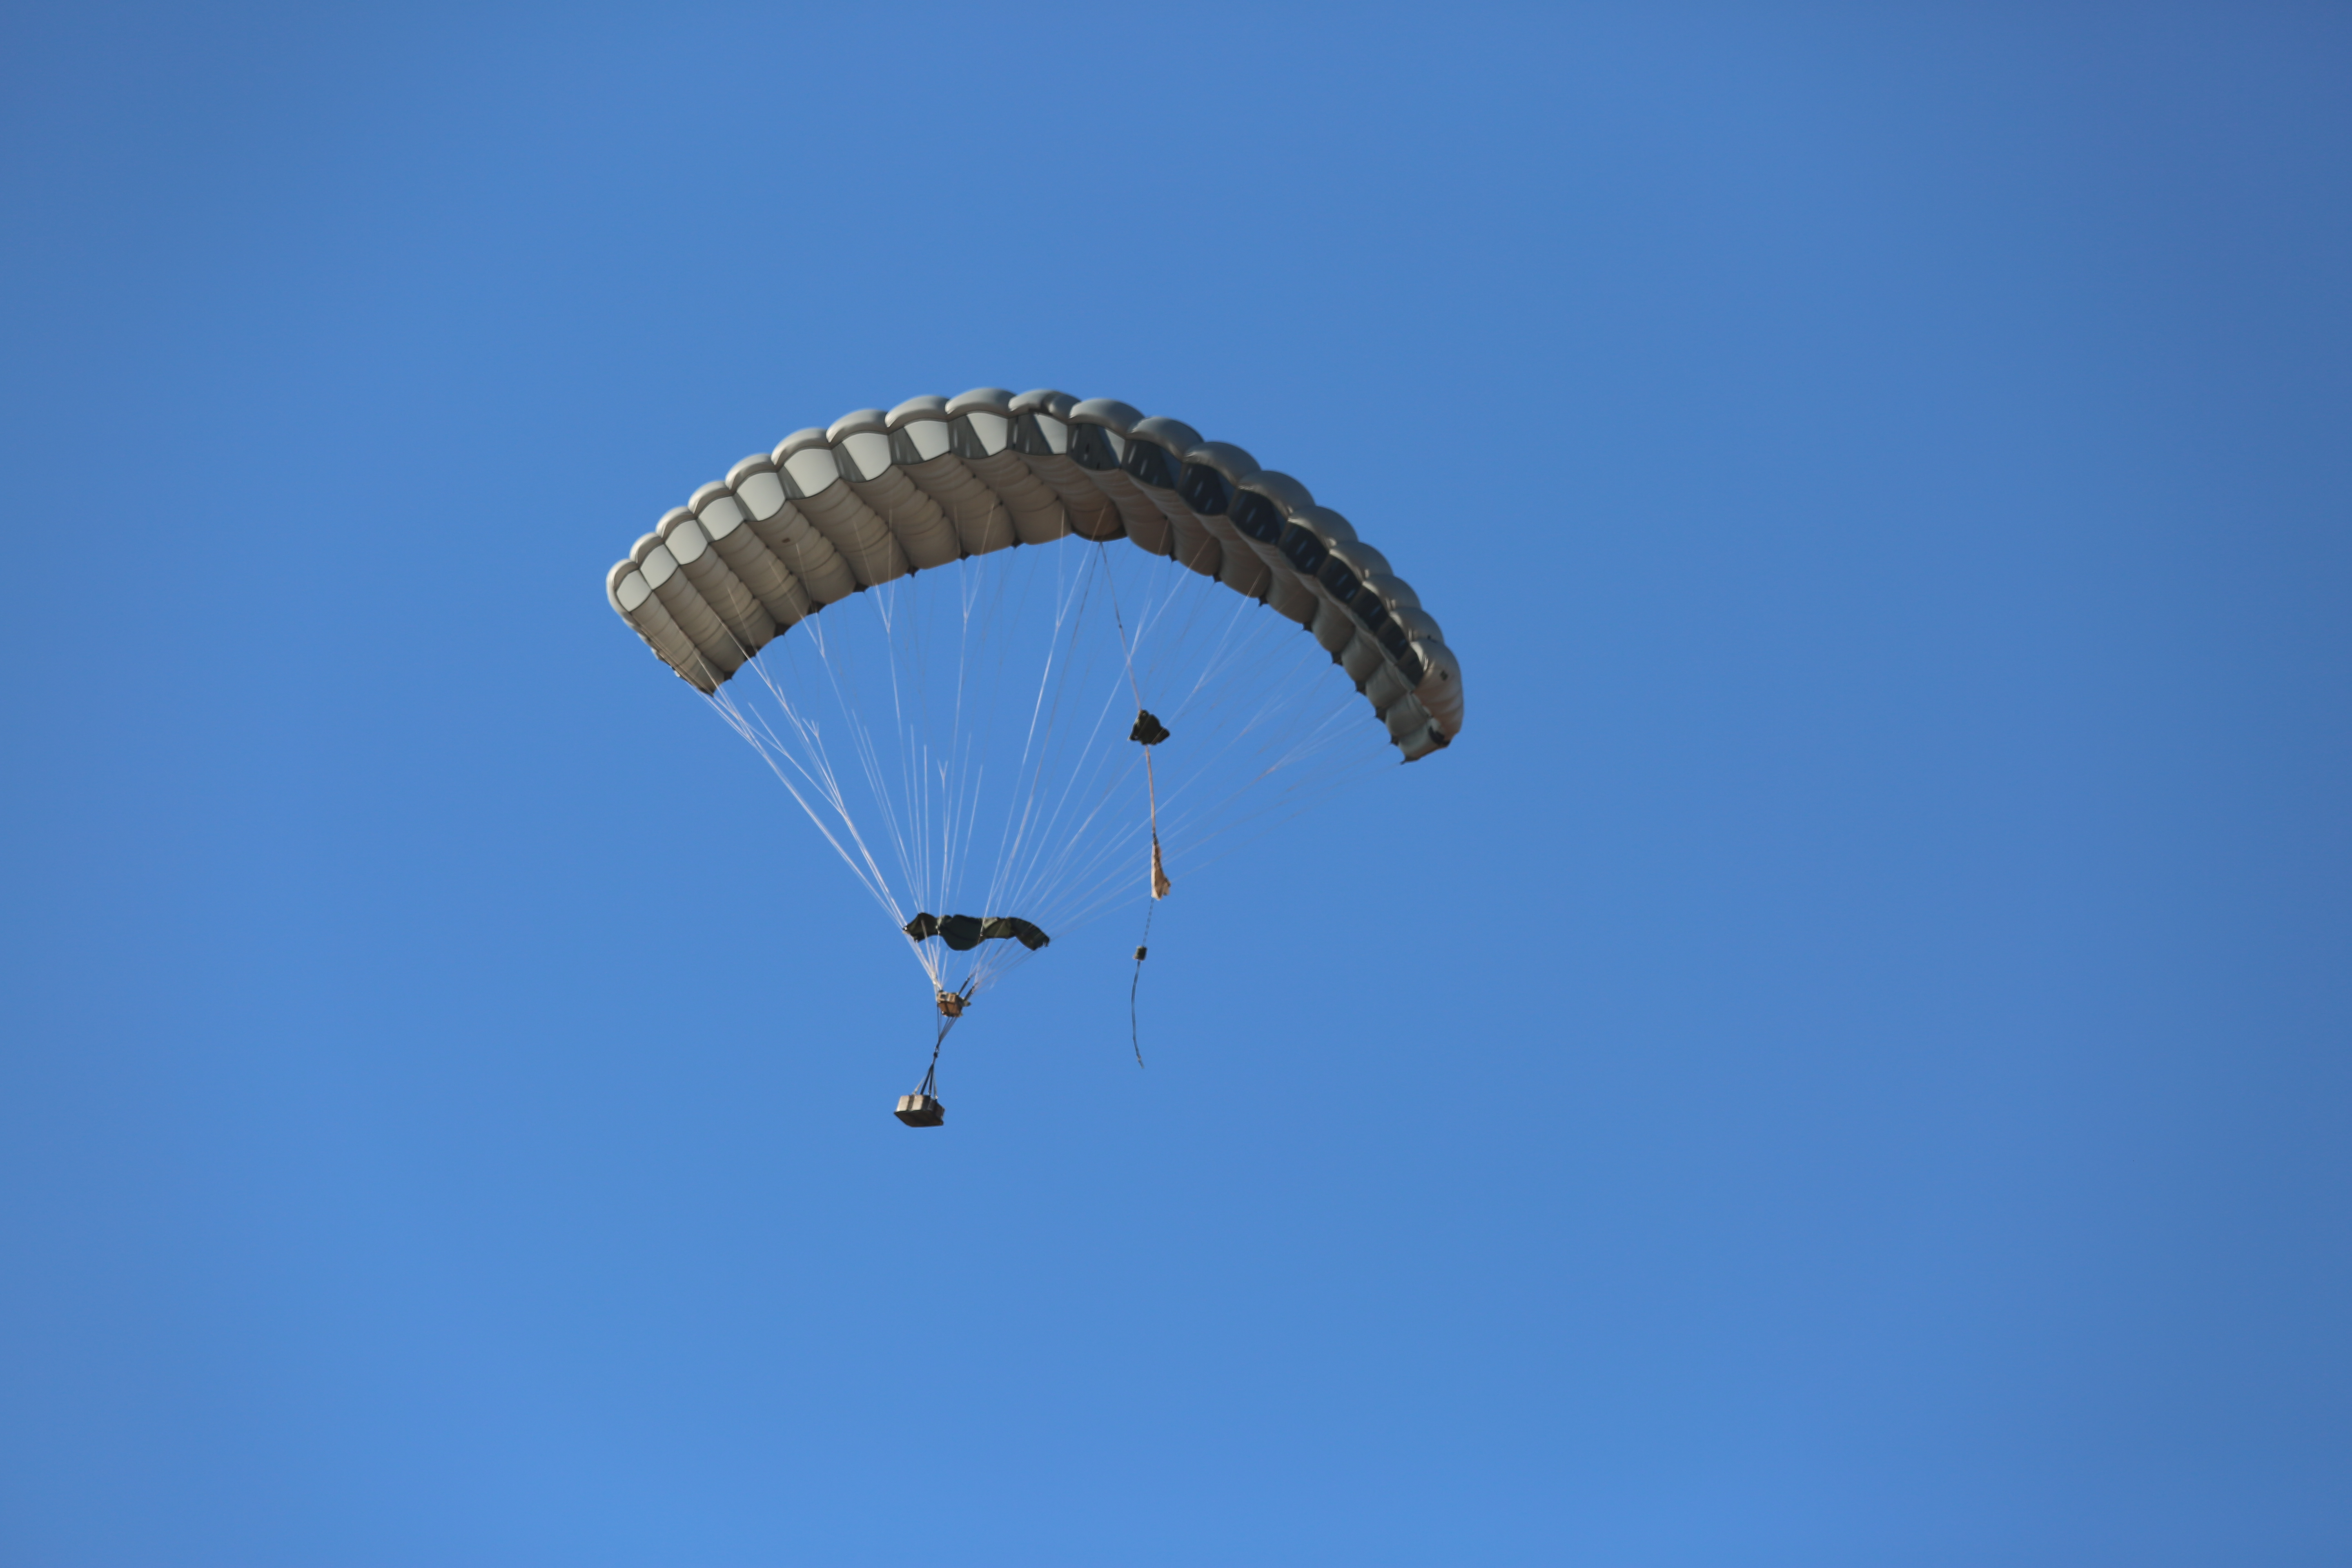 2K1T Army Cargo Delivery Parachute